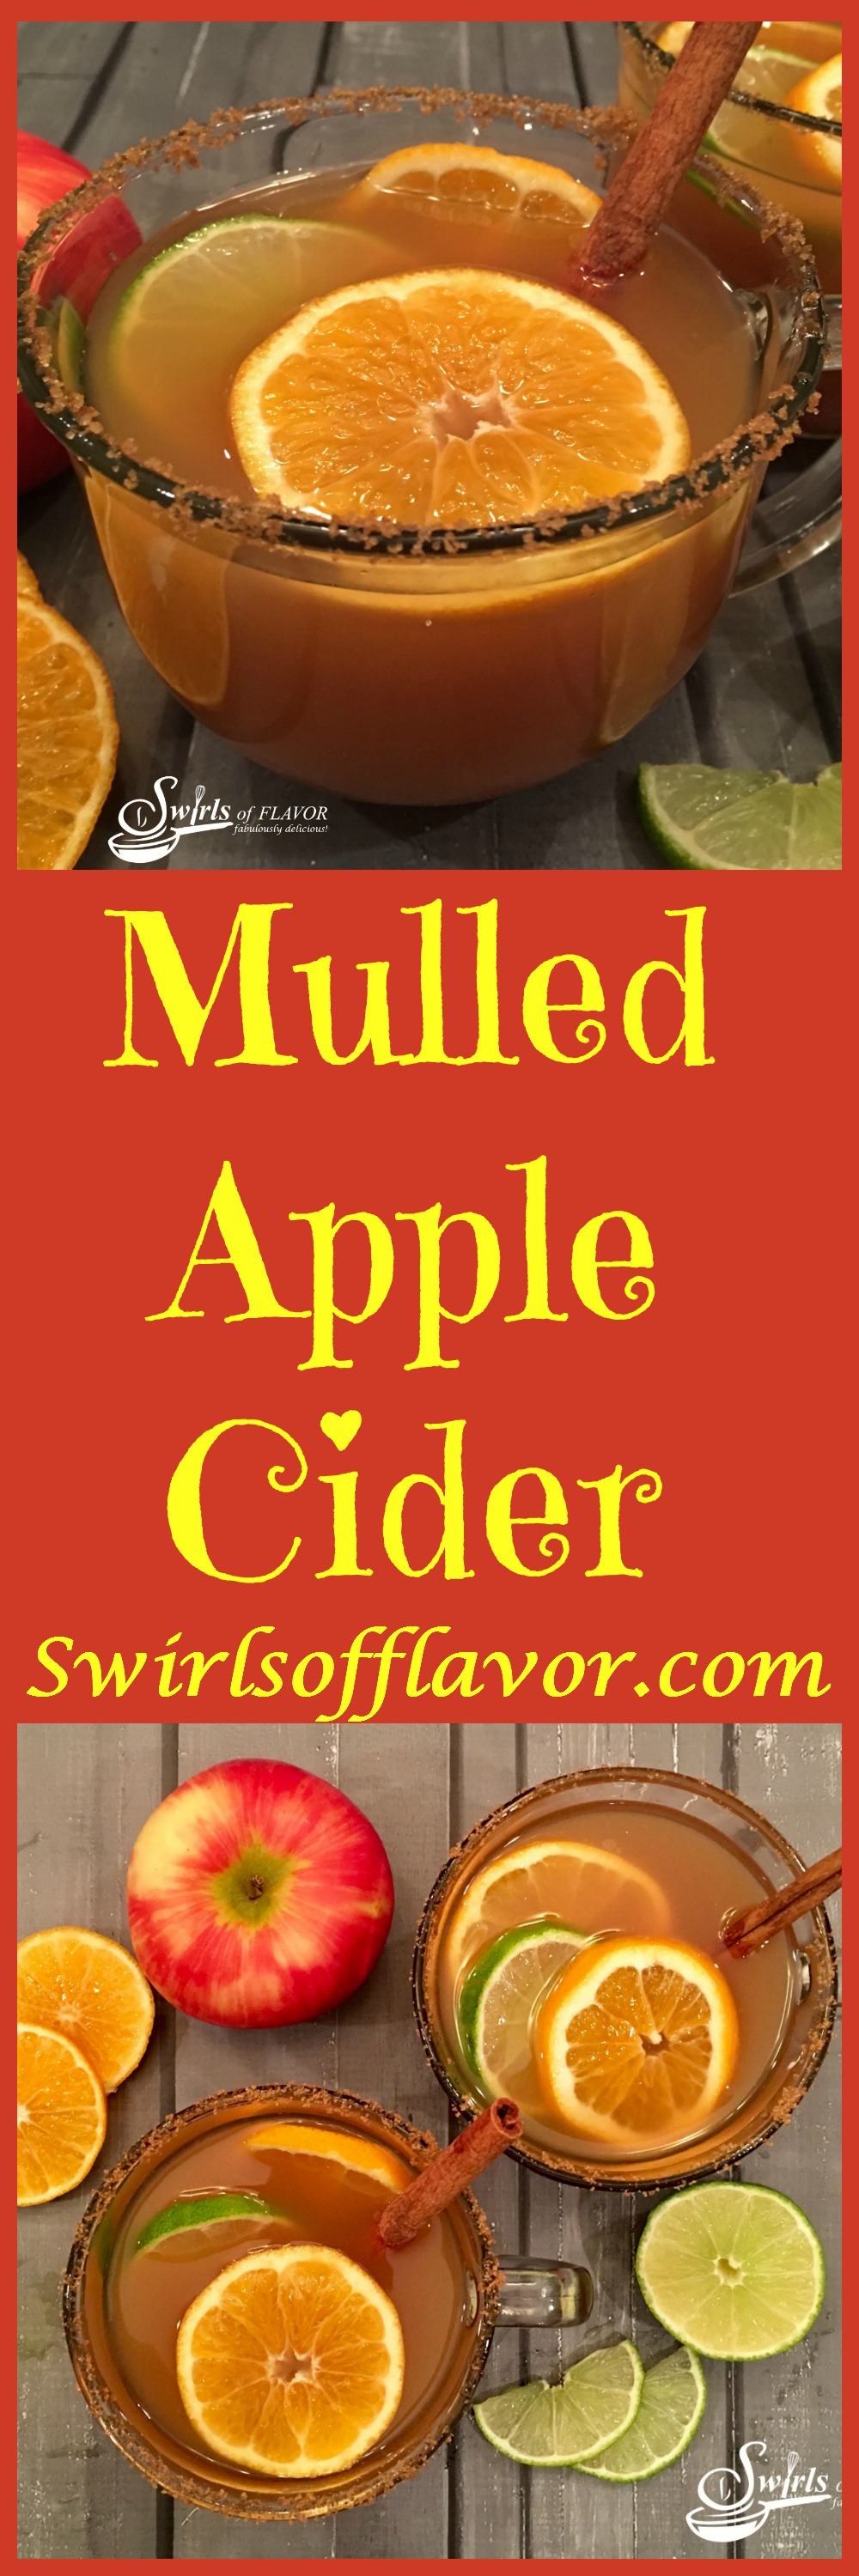 Mulled Apple Cider is a delicious way to kick off the chilly autumn season. Apple cider infuses with cinnamon sticks, fresh ginger and clementines in your slow cooker for a flavorful beverage bursting with fall flavors. Just add Bourbon and slices of clementine and lime and this hot toddy will surely become a fall favorite! #Bourbon #applecider #mulledcider #warmdrinks #hottoddy #clementines #easy recipe #holiday #appleseason #swirlsofflavor